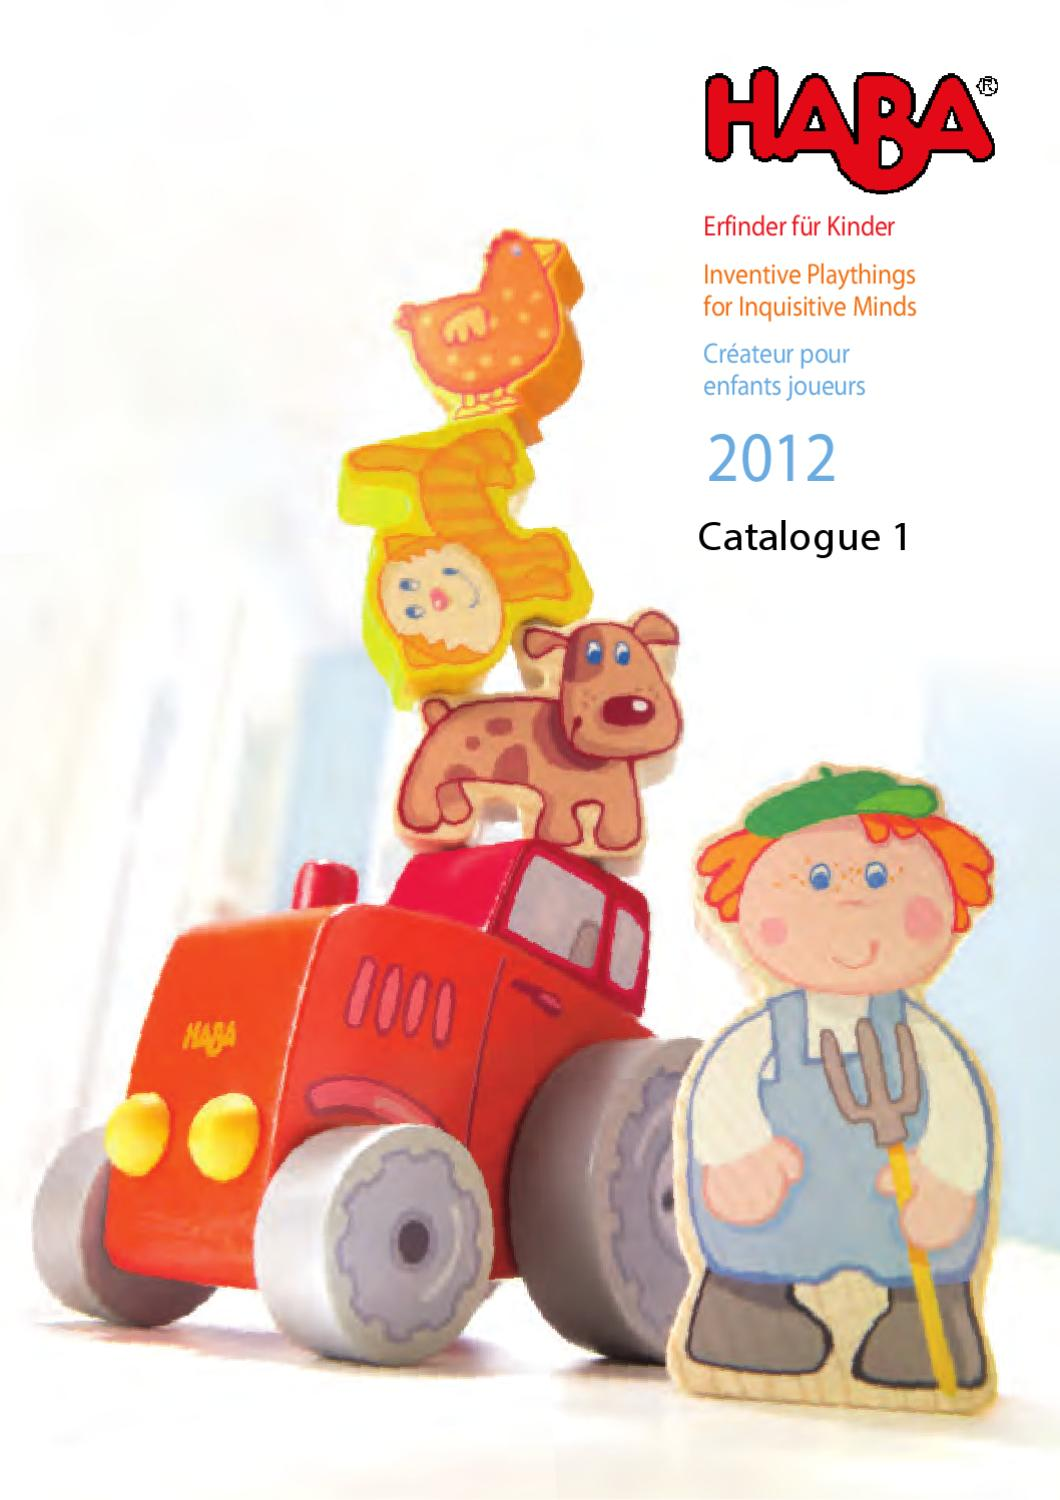 haba 2012 catalogue full _1 by rose and lily australia - issuu